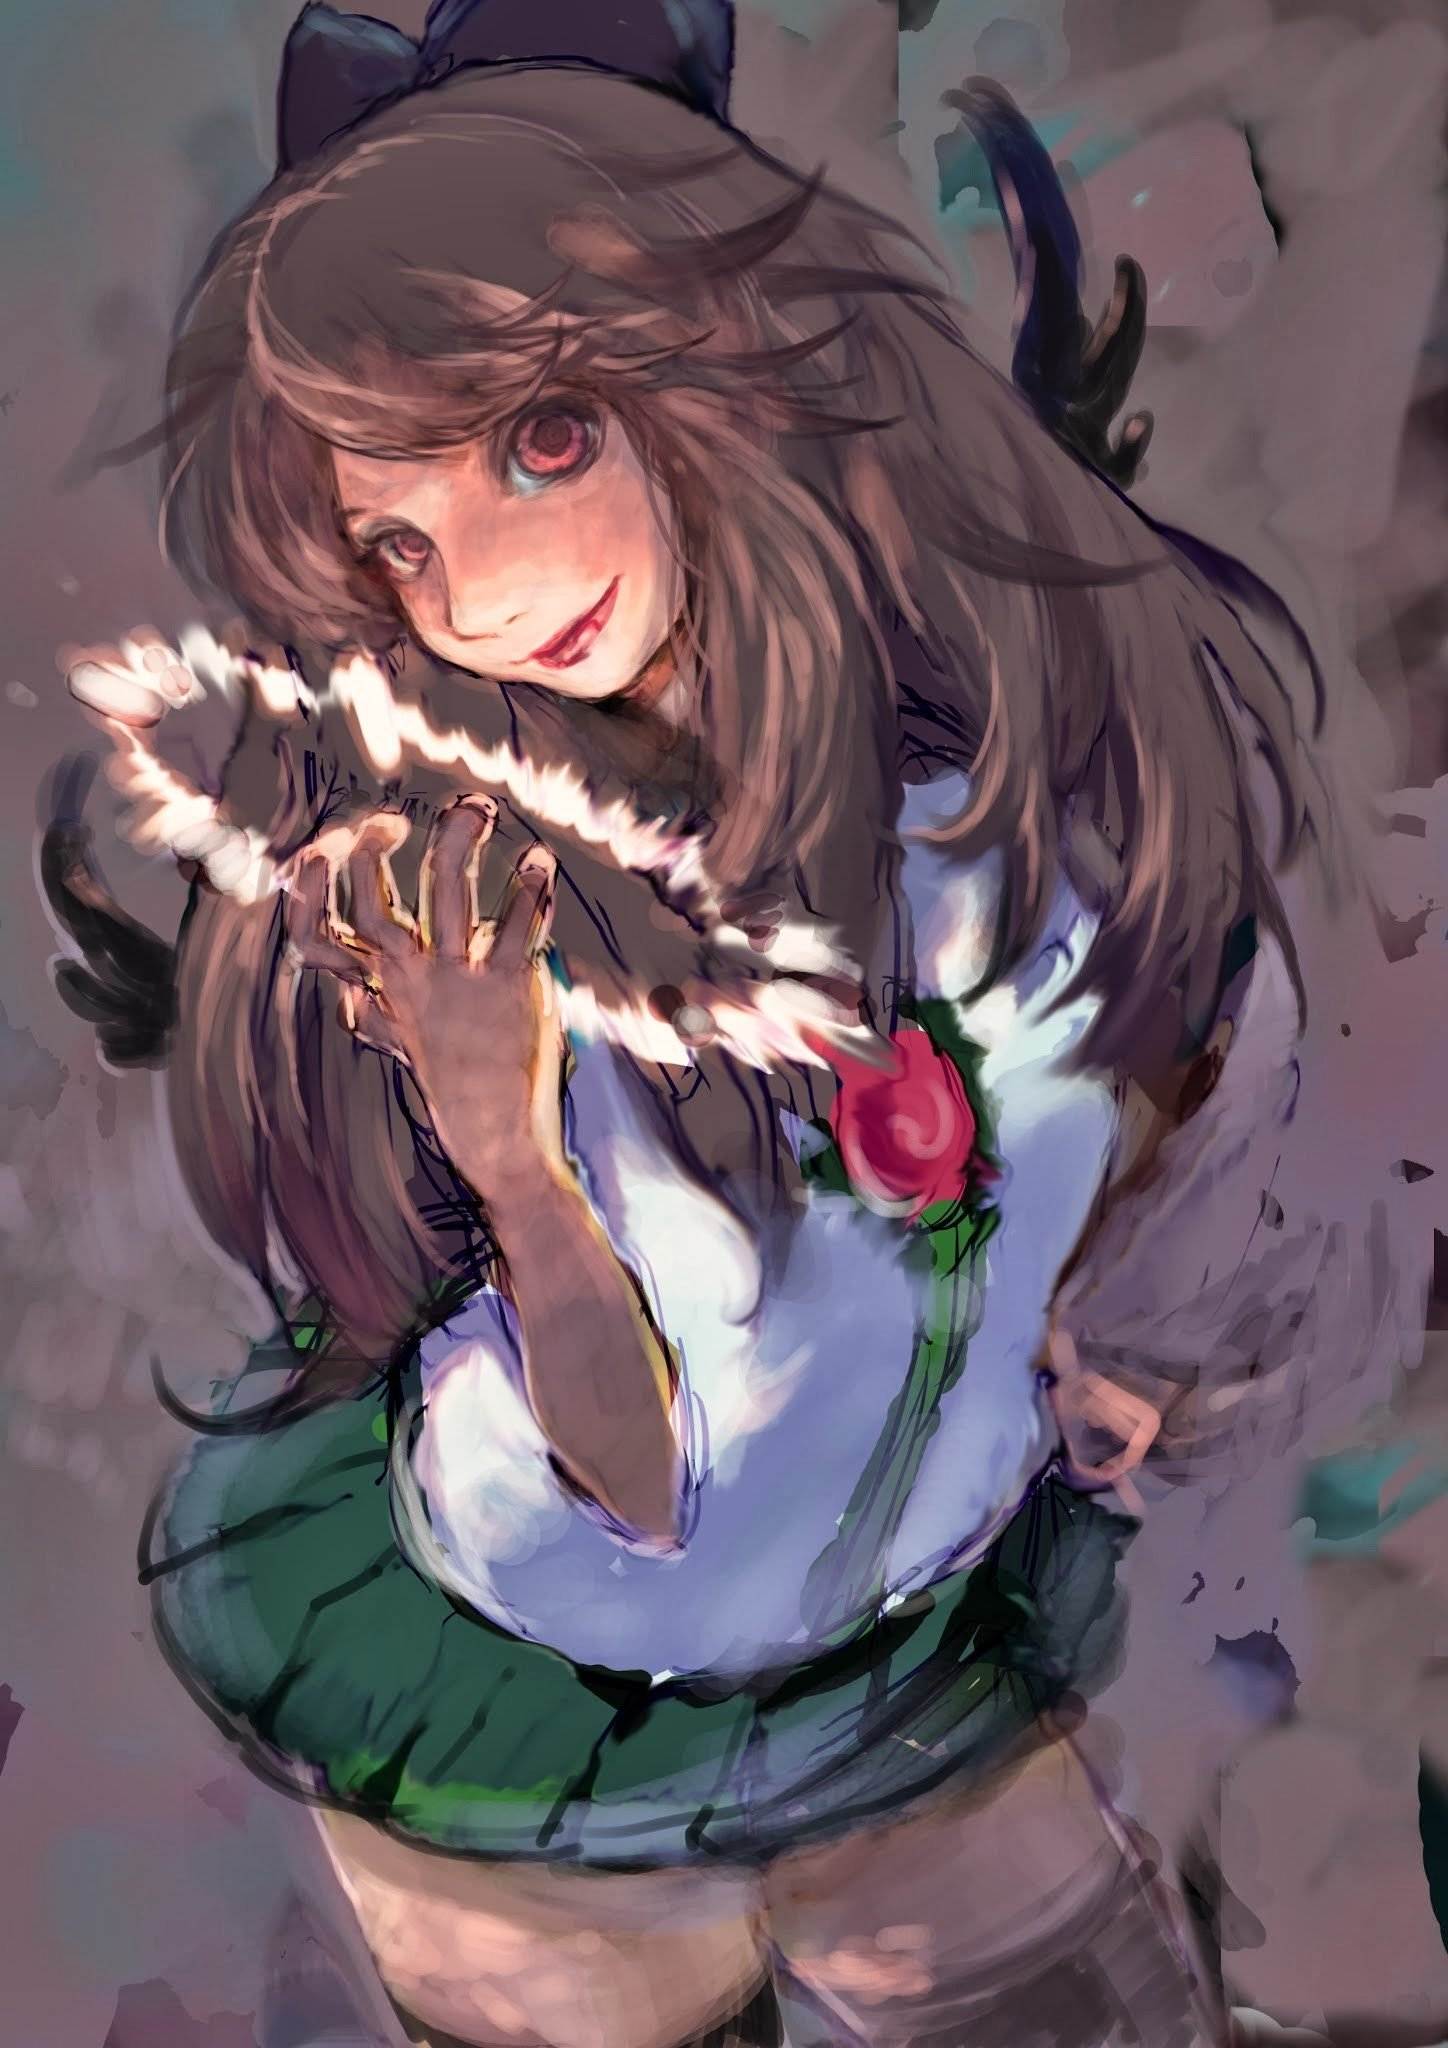 Anime Girls, Touhou, Reiuji Utsuho Hd Wallpapers  Desktop -7974